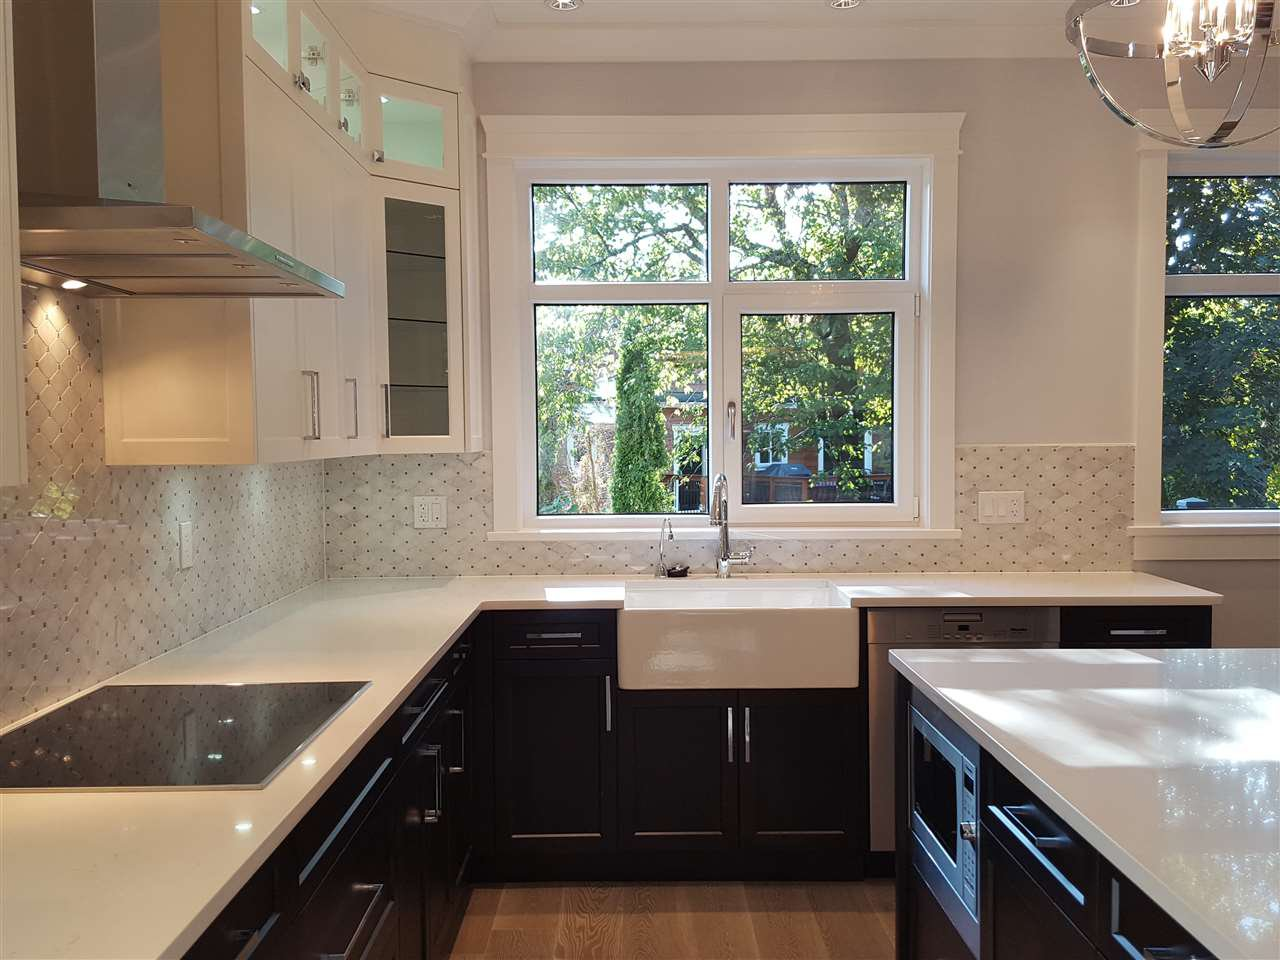 Photo 7: Photos: 4333 KEVIN Place in Vancouver: Dunbar House for sale (Vancouver West)  : MLS®# R2200814